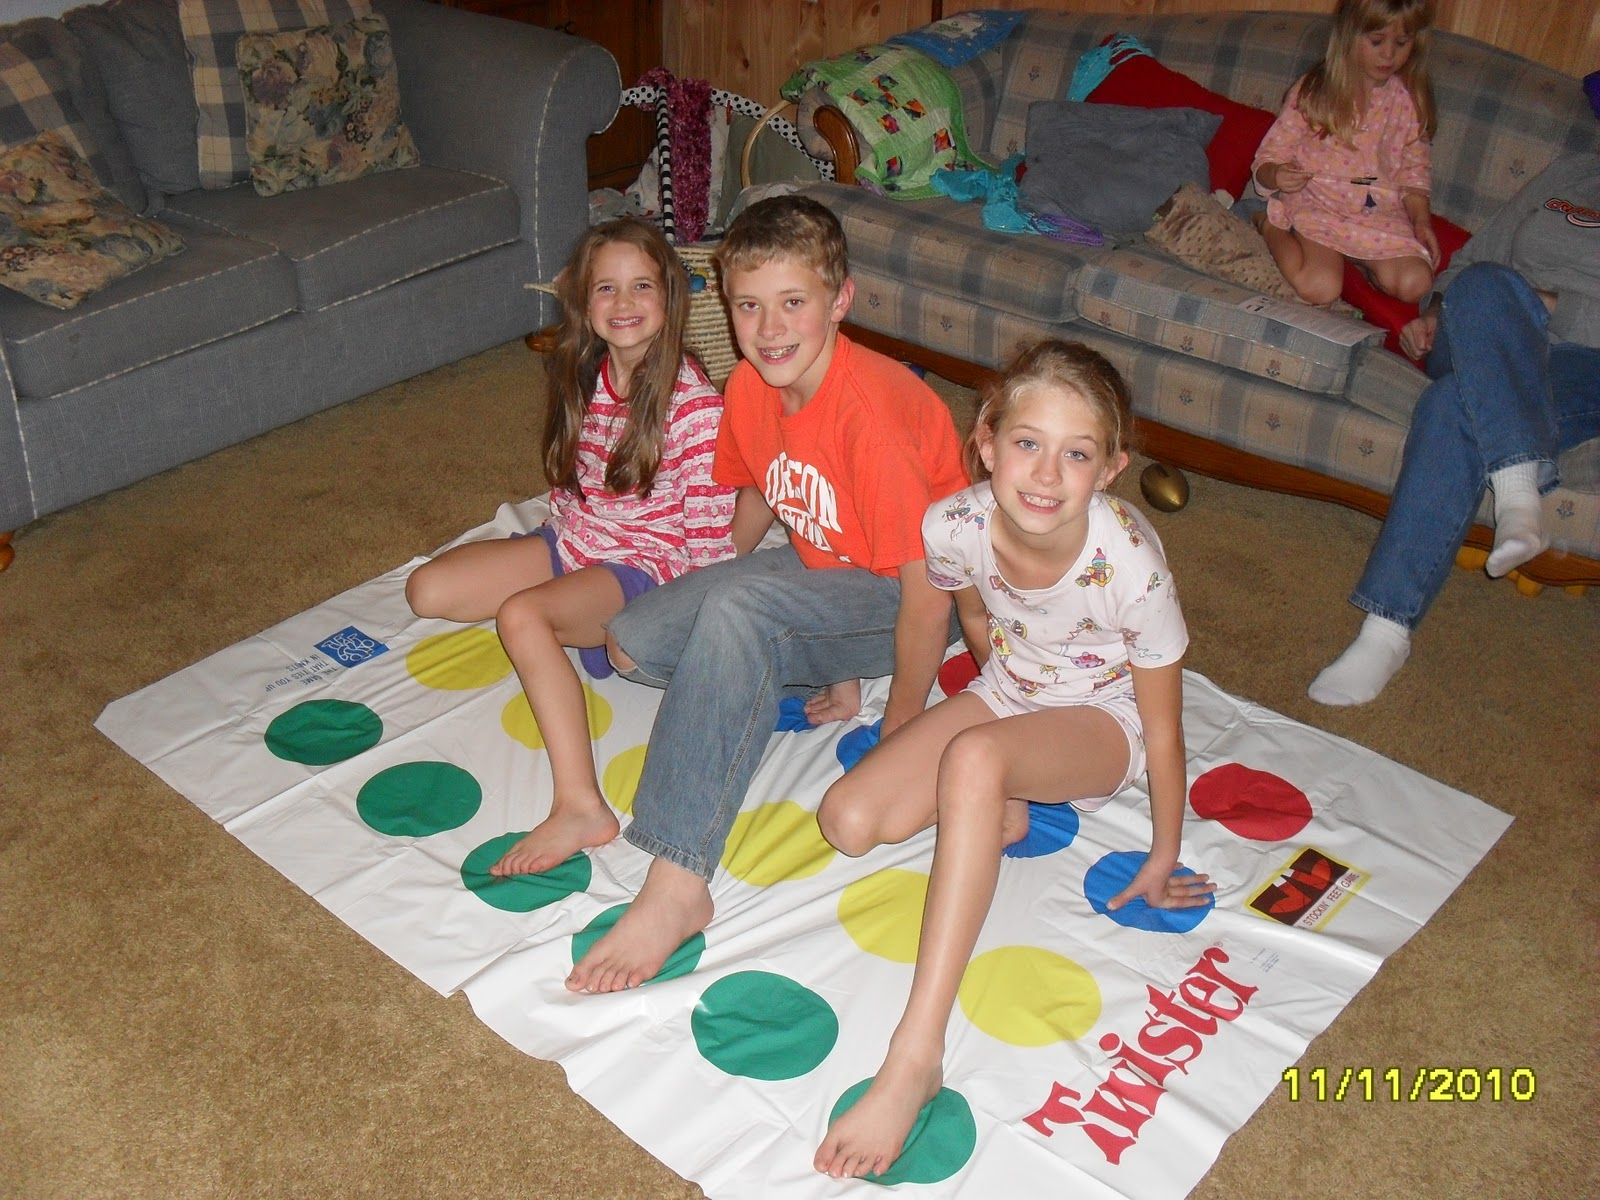 from Jeffrey little girls playing twister